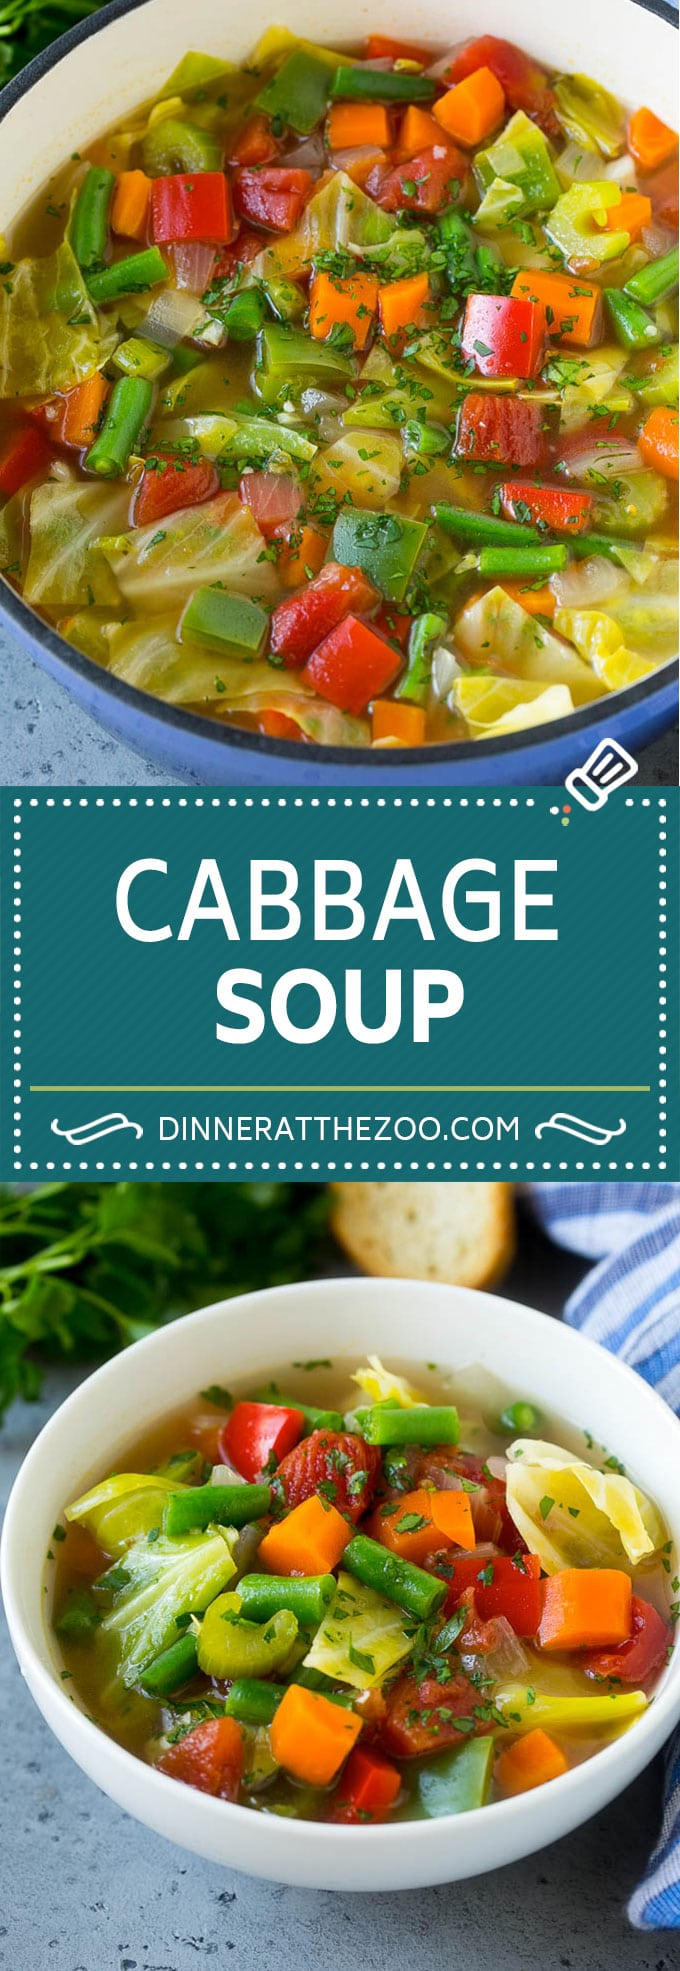 Cabbage Soup Recipe | Vegetable Soup | Veggie Soup | Healthy Soup #soup #healthy #cleaneating #cabbage #vegetables #veggies #dinner #dinneratthezoo